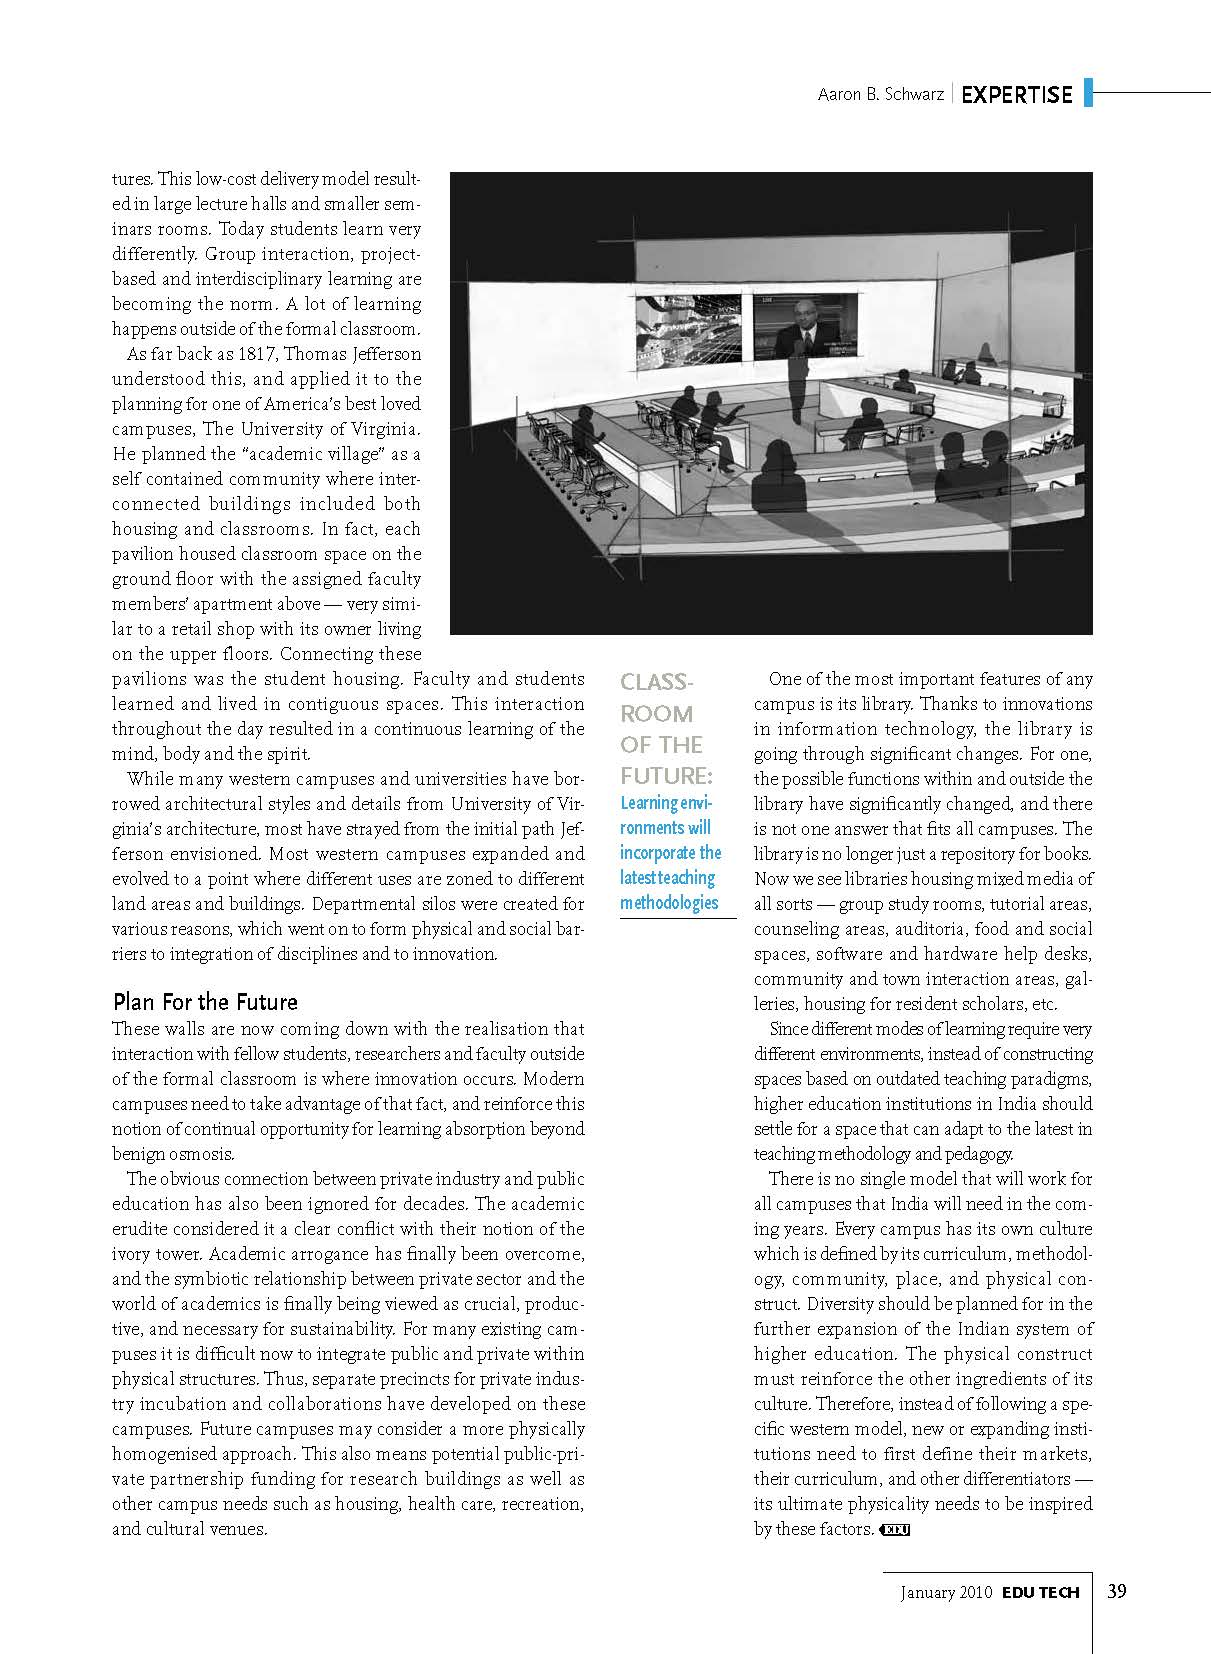 edu combined articles_Page_11.jpg